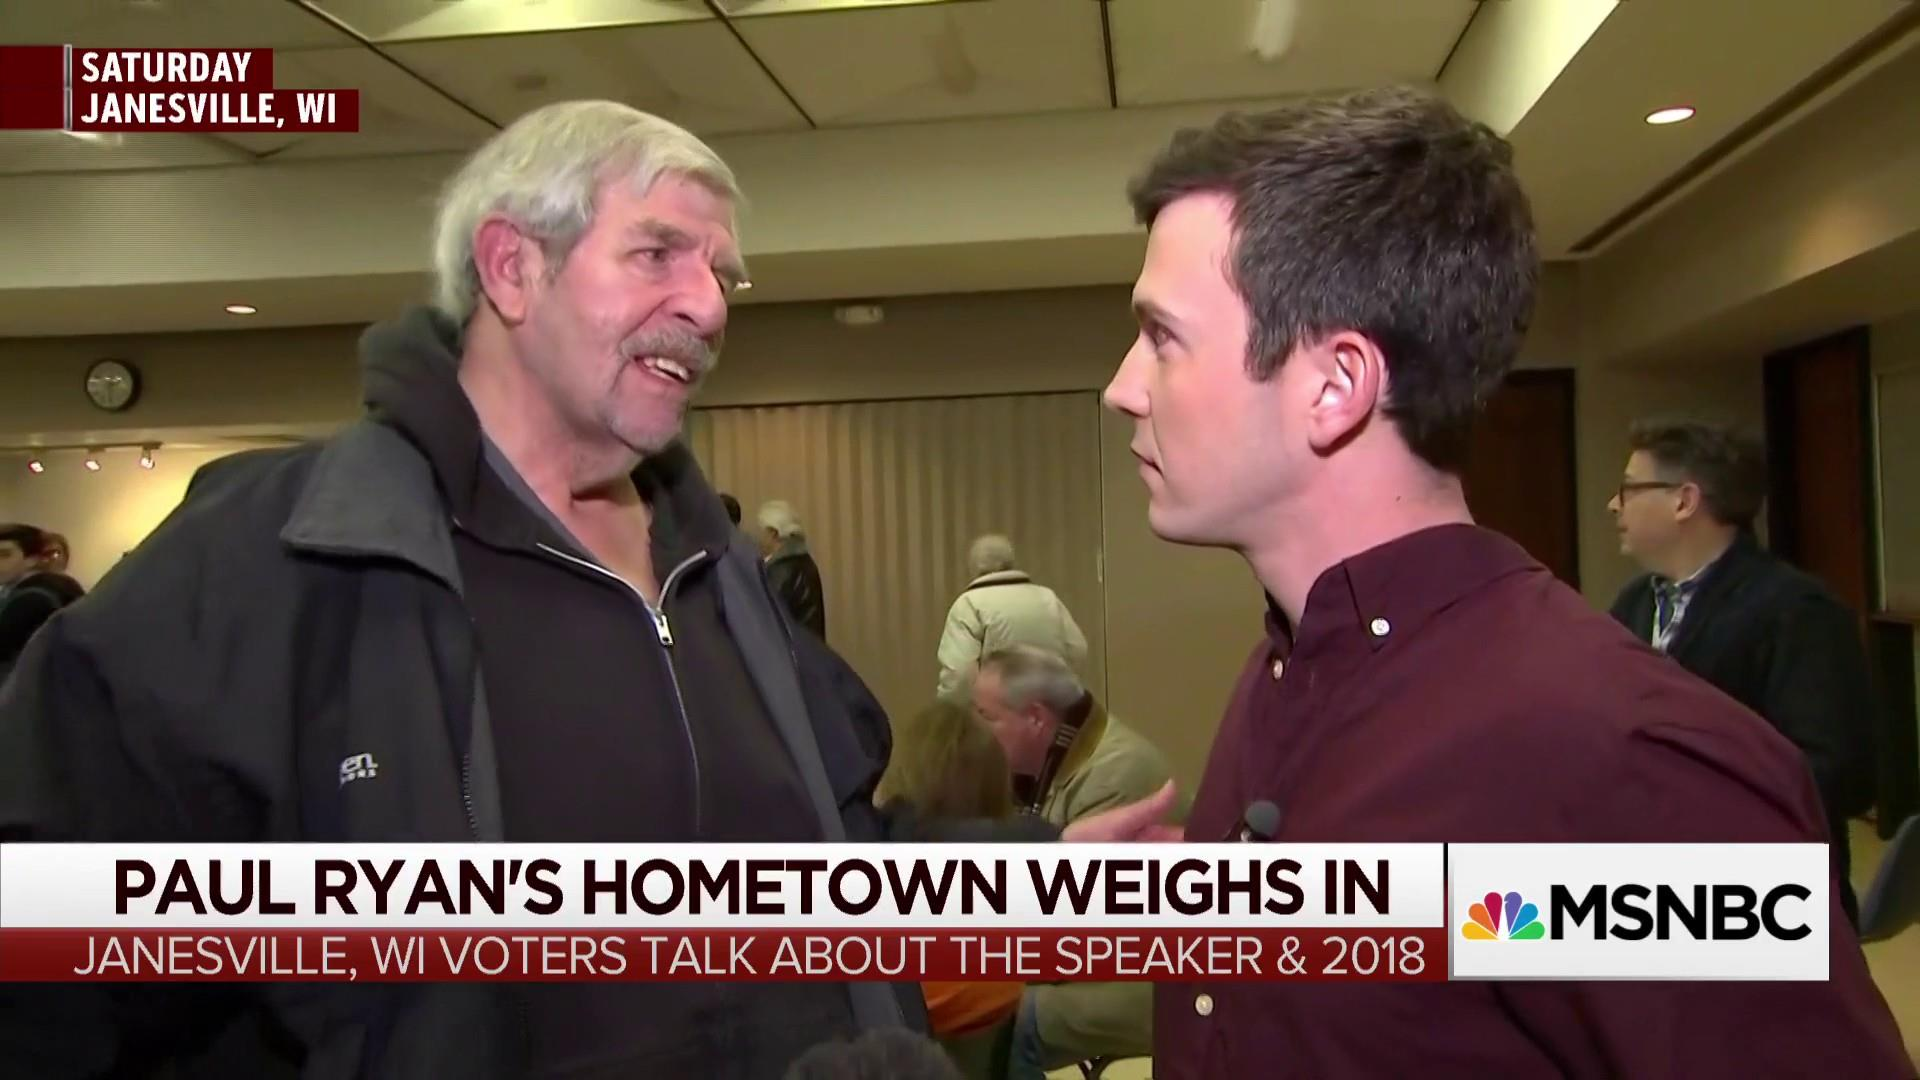 Janesvile voters have mixed feelings about Paul Ryan